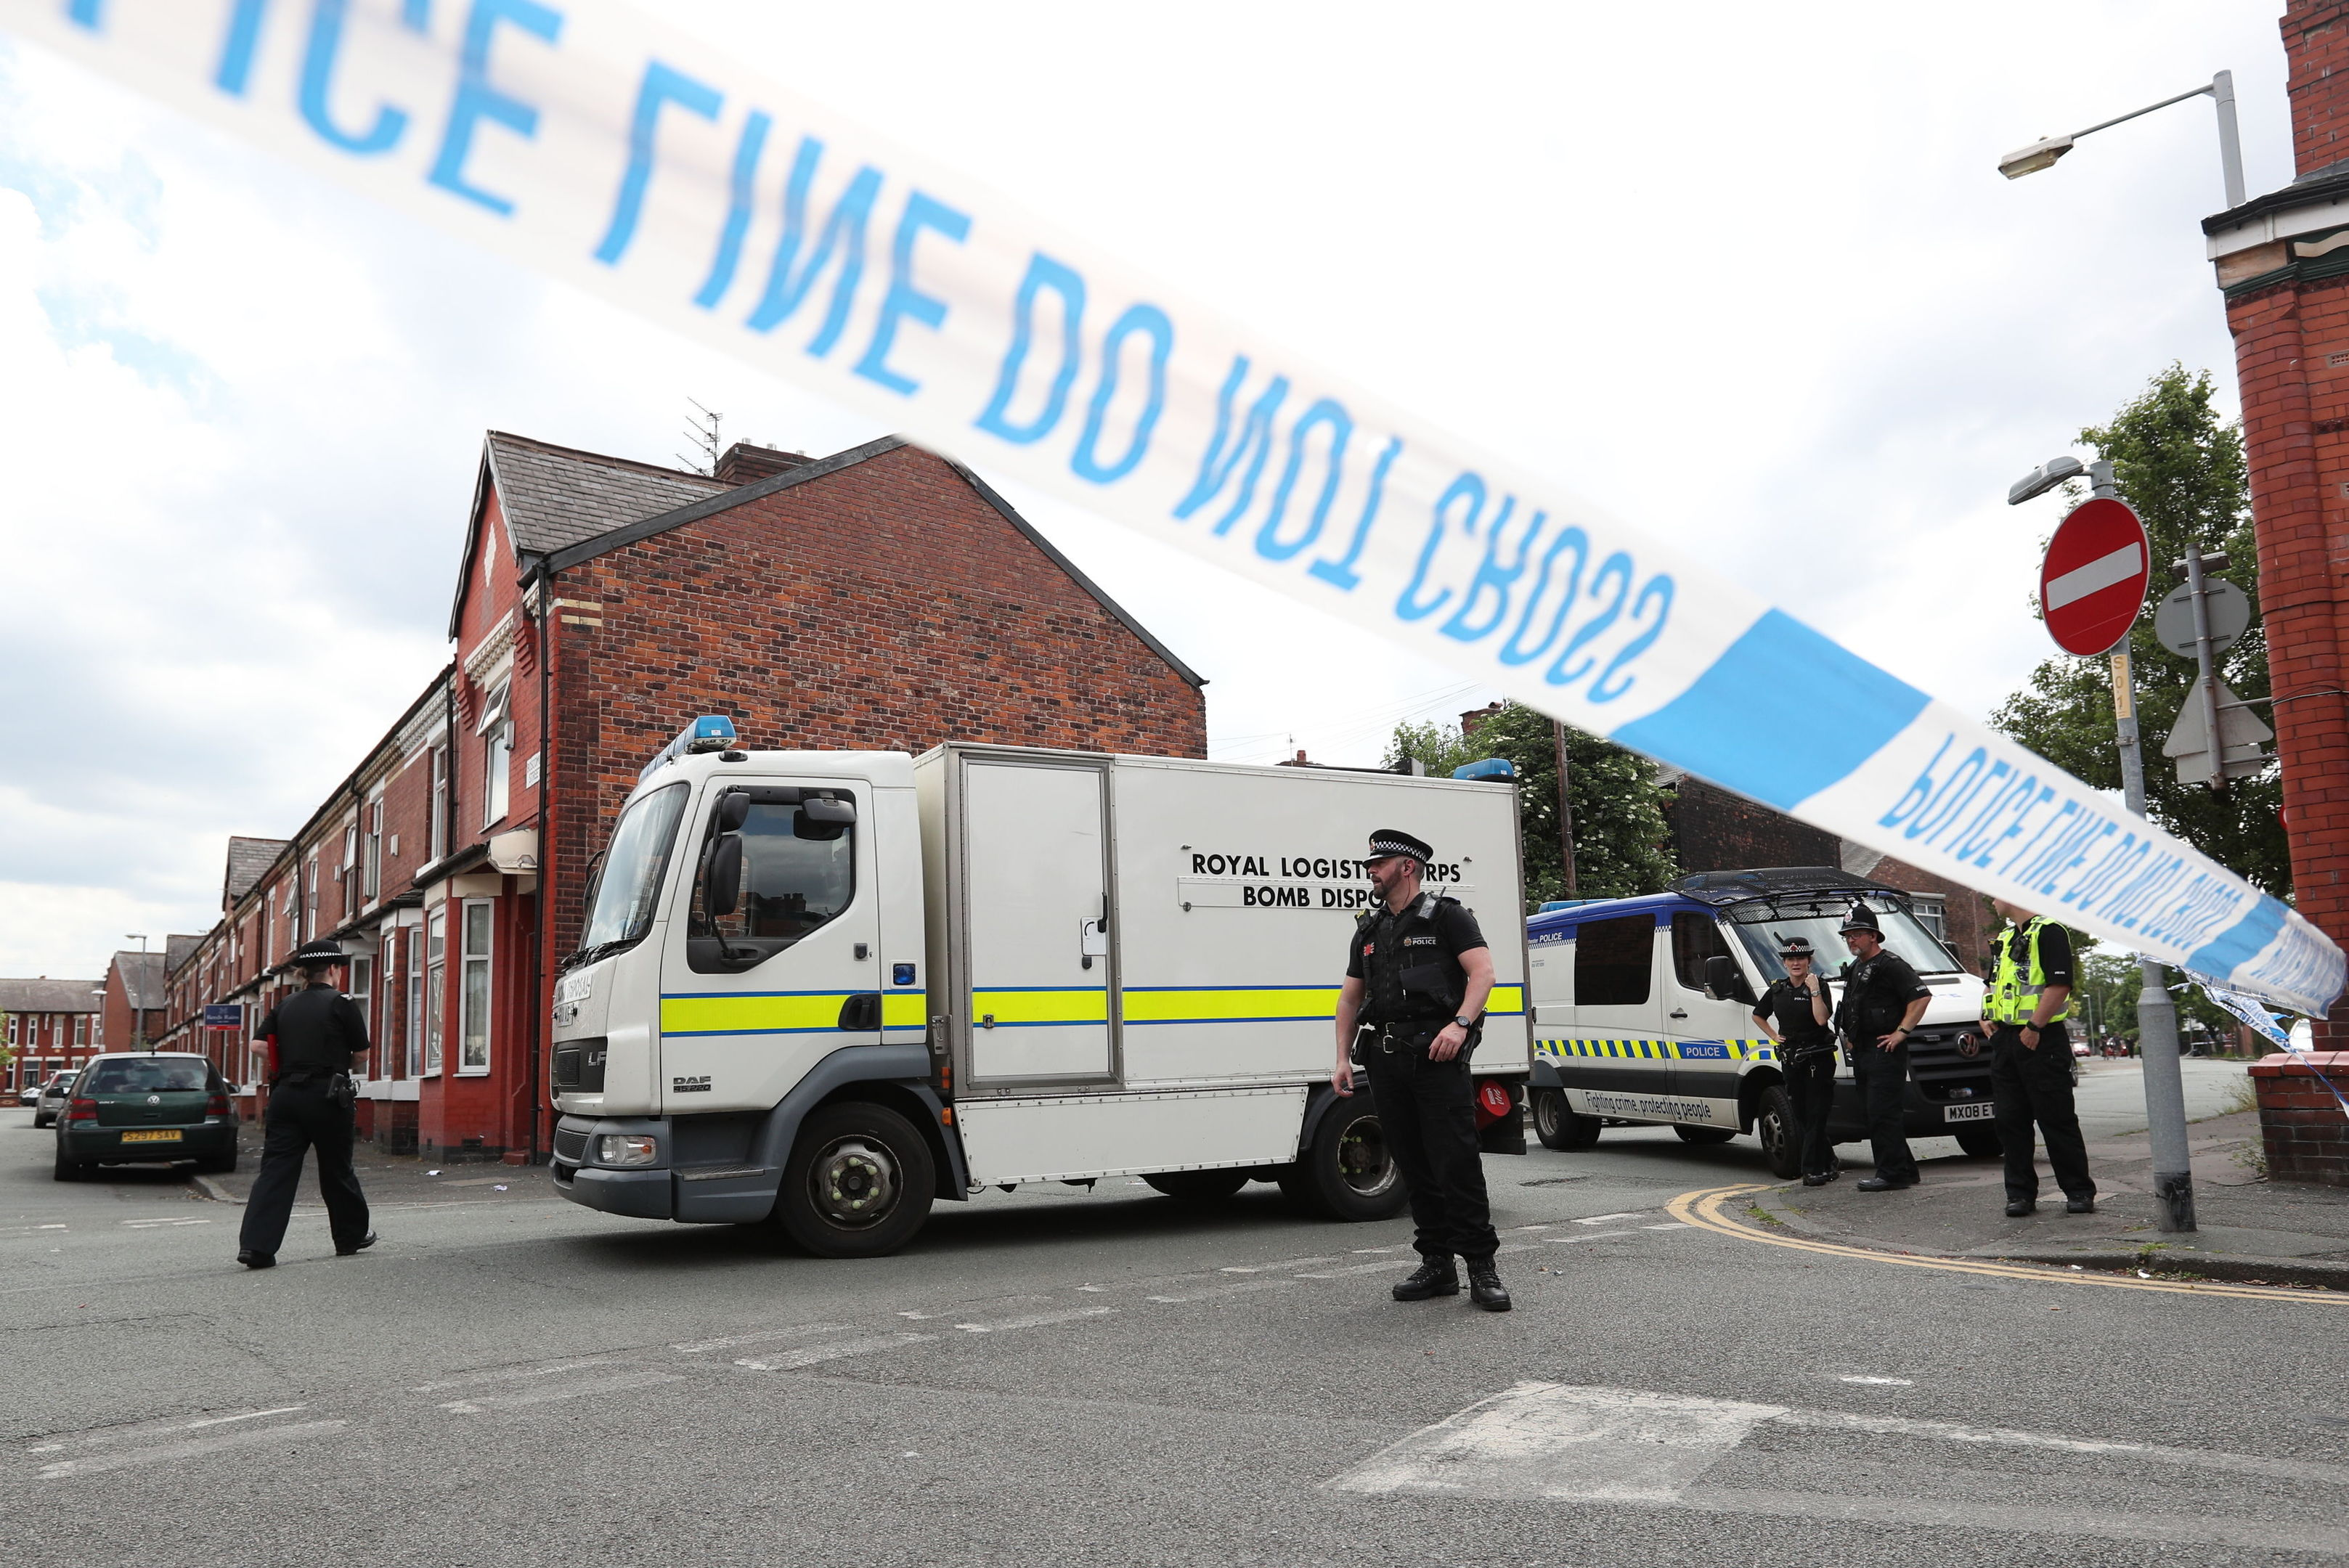 Police and a bomb disposal unit at the junction between Boscombe Street and Yew Tree Road in the Moss Side area of Manchester, after an evacuation took place as part of an ongoing search following the terror attack in the city earlier this week. (Jonathan Brady/PA Wire)